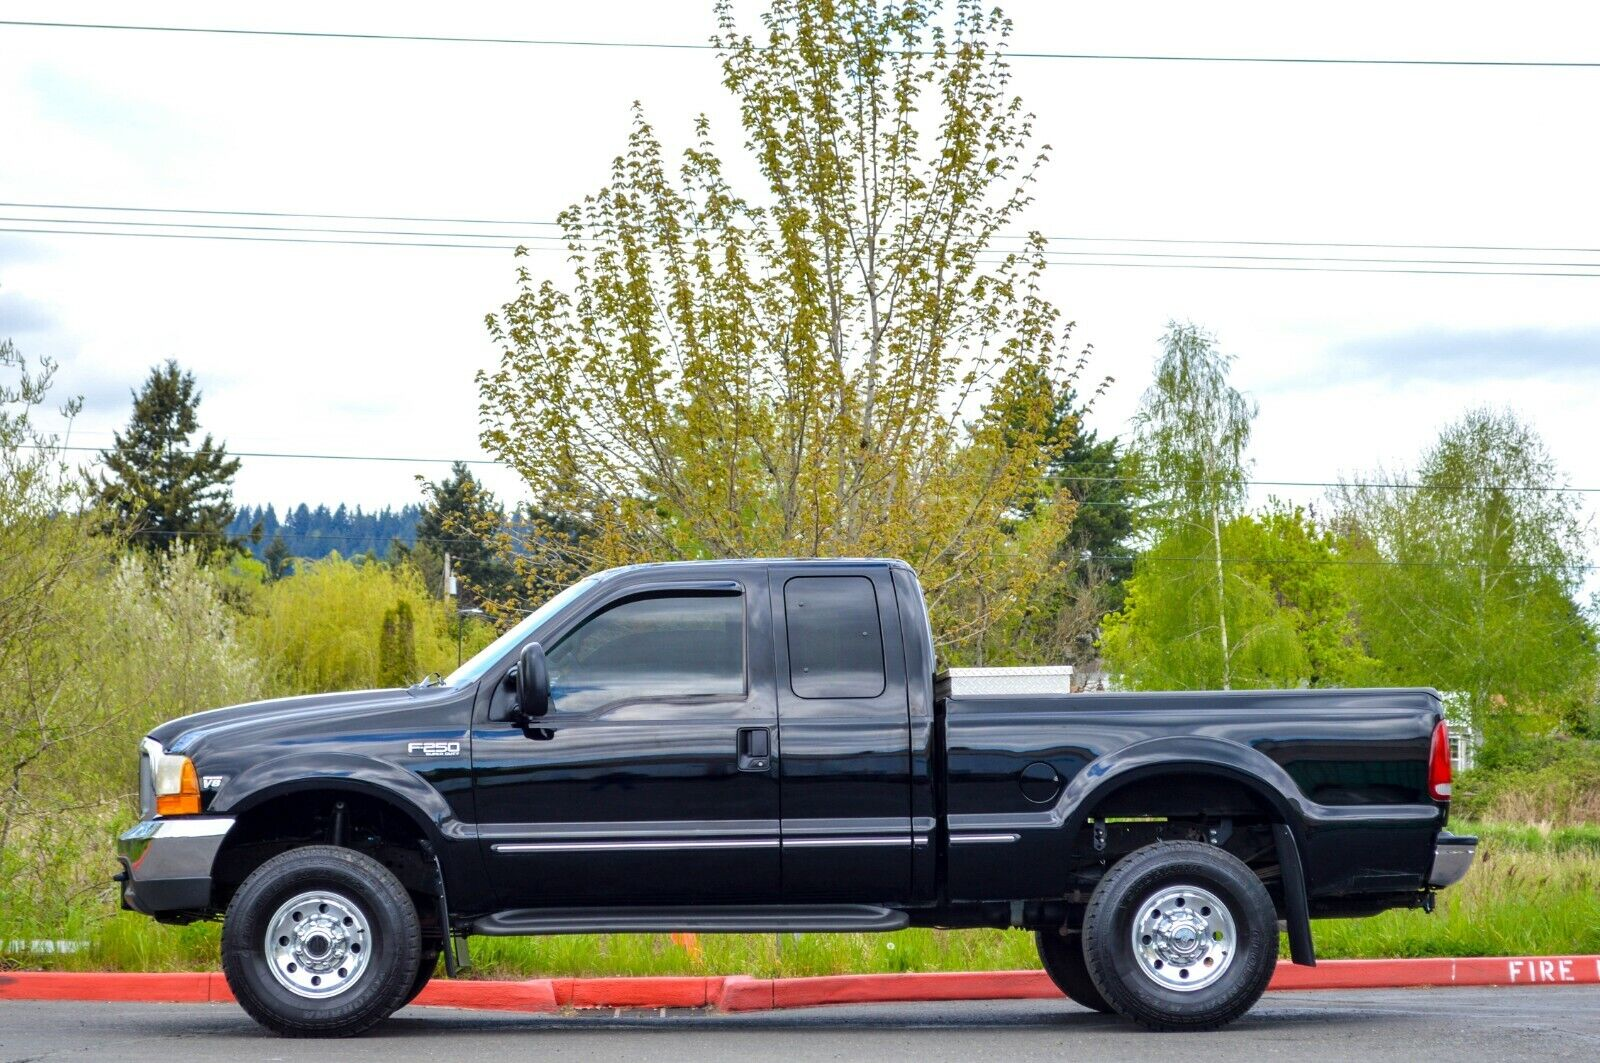 1999 FORD F250 SUPER CAB 4X4 7.3L POWERSTROKE TURBO DIESEL ONLY 84K MILES!!!